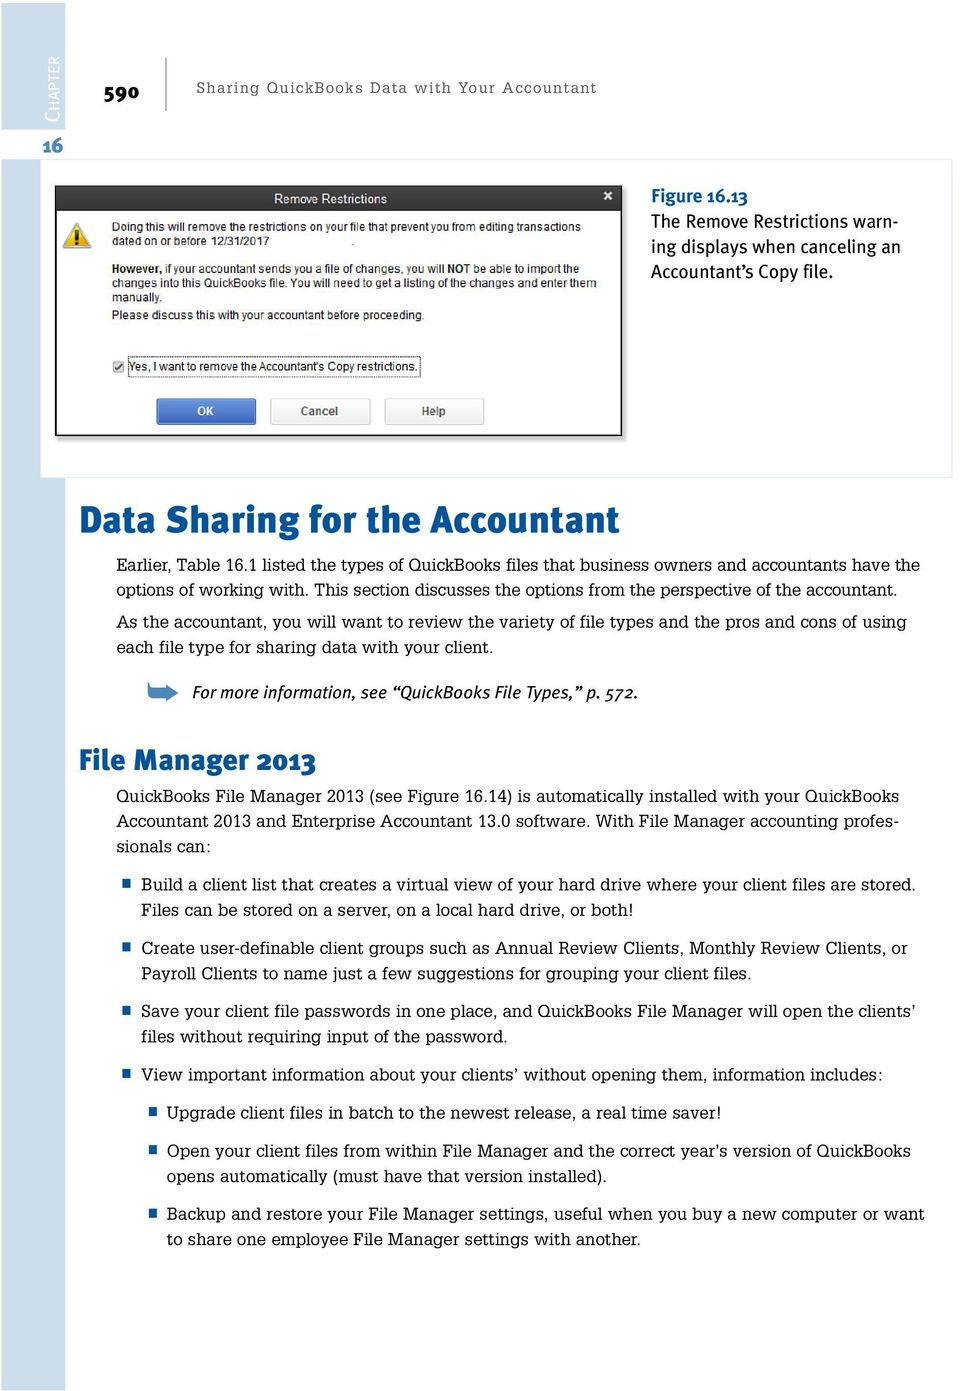 As the accountant, you will want to review the variety of file types and the pros and cons of using each file type for sharing data with your client.